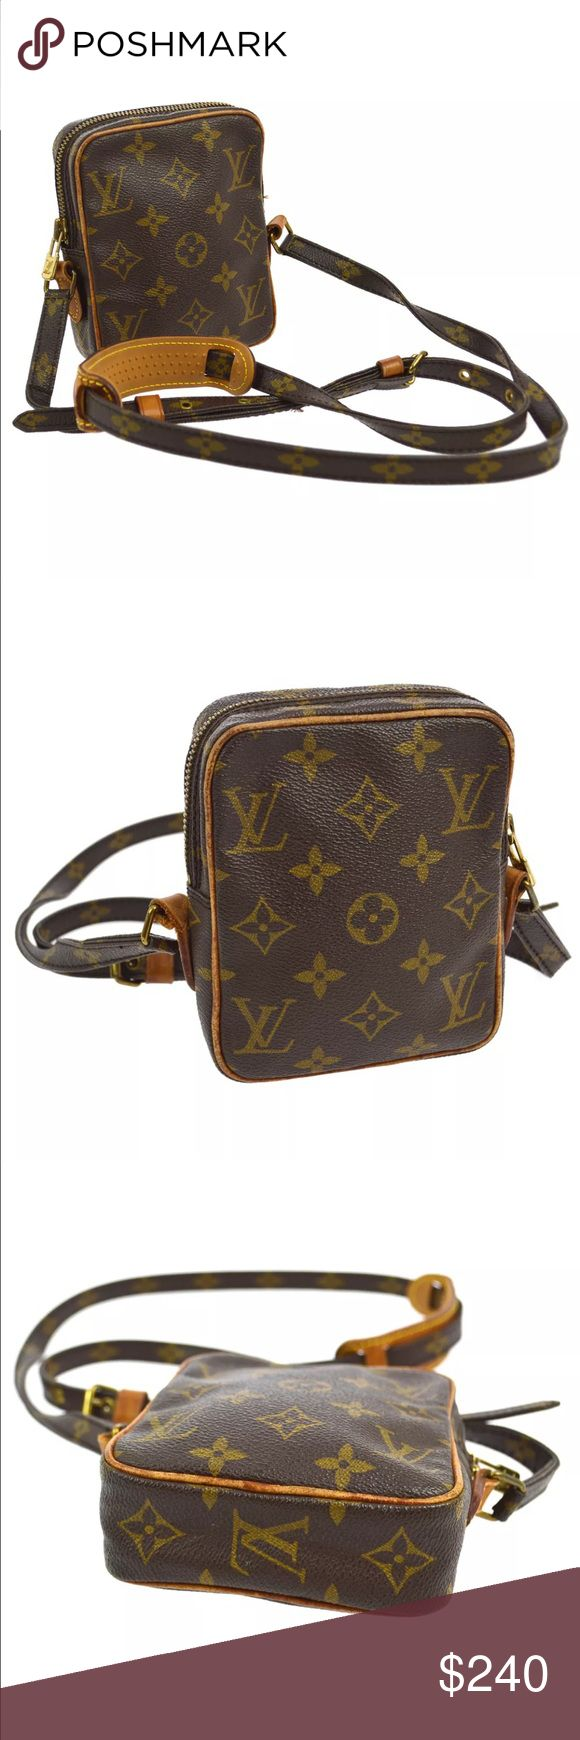 "Authentic Louis Vuitton Danube Mini Crossbody Brown and tan monogram coated canvas Louis Vuitton Mini Danube bag with brass hardware, tan vachetta leather trim, flat adjustable shoulder strap, brown leather lining and zip closure at top. One loose stitch on the shoulder, leather aging. 4.5"" by 5.5"". Louis Vuitton Bags Crossbody Bags"